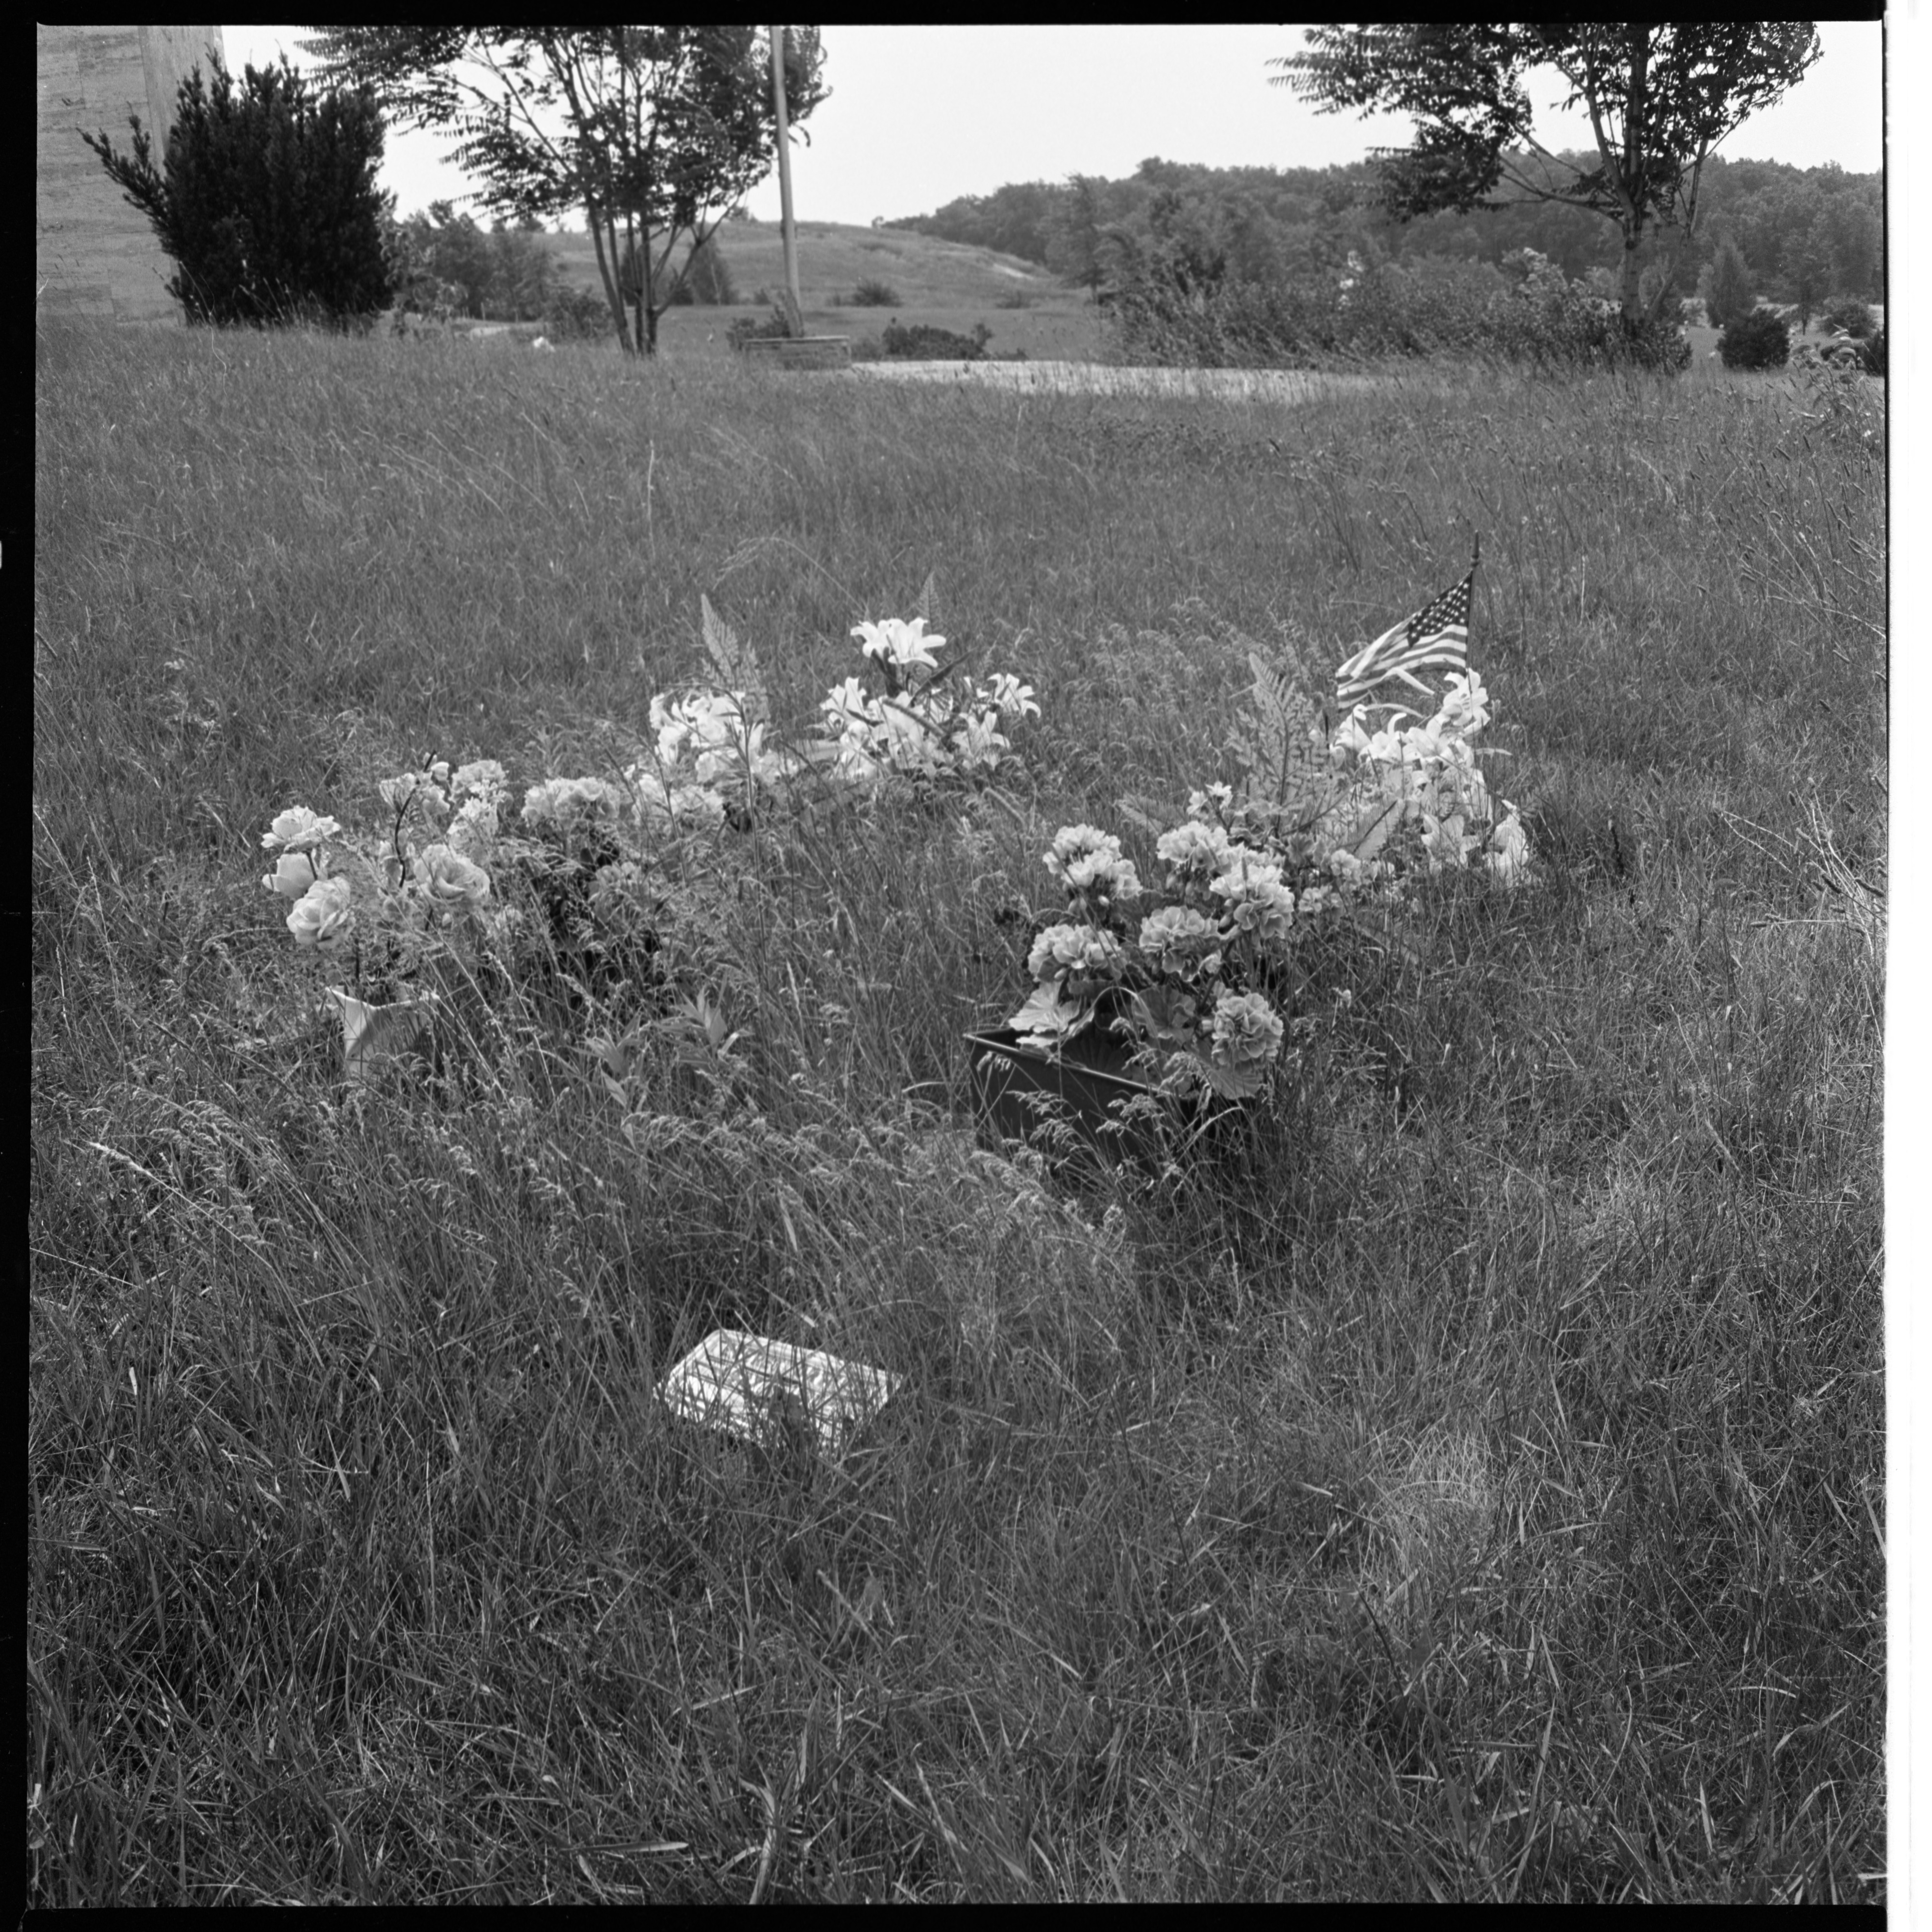 Grave In Arborcrest Cemetery Obscured By Weeds, July 1966 image